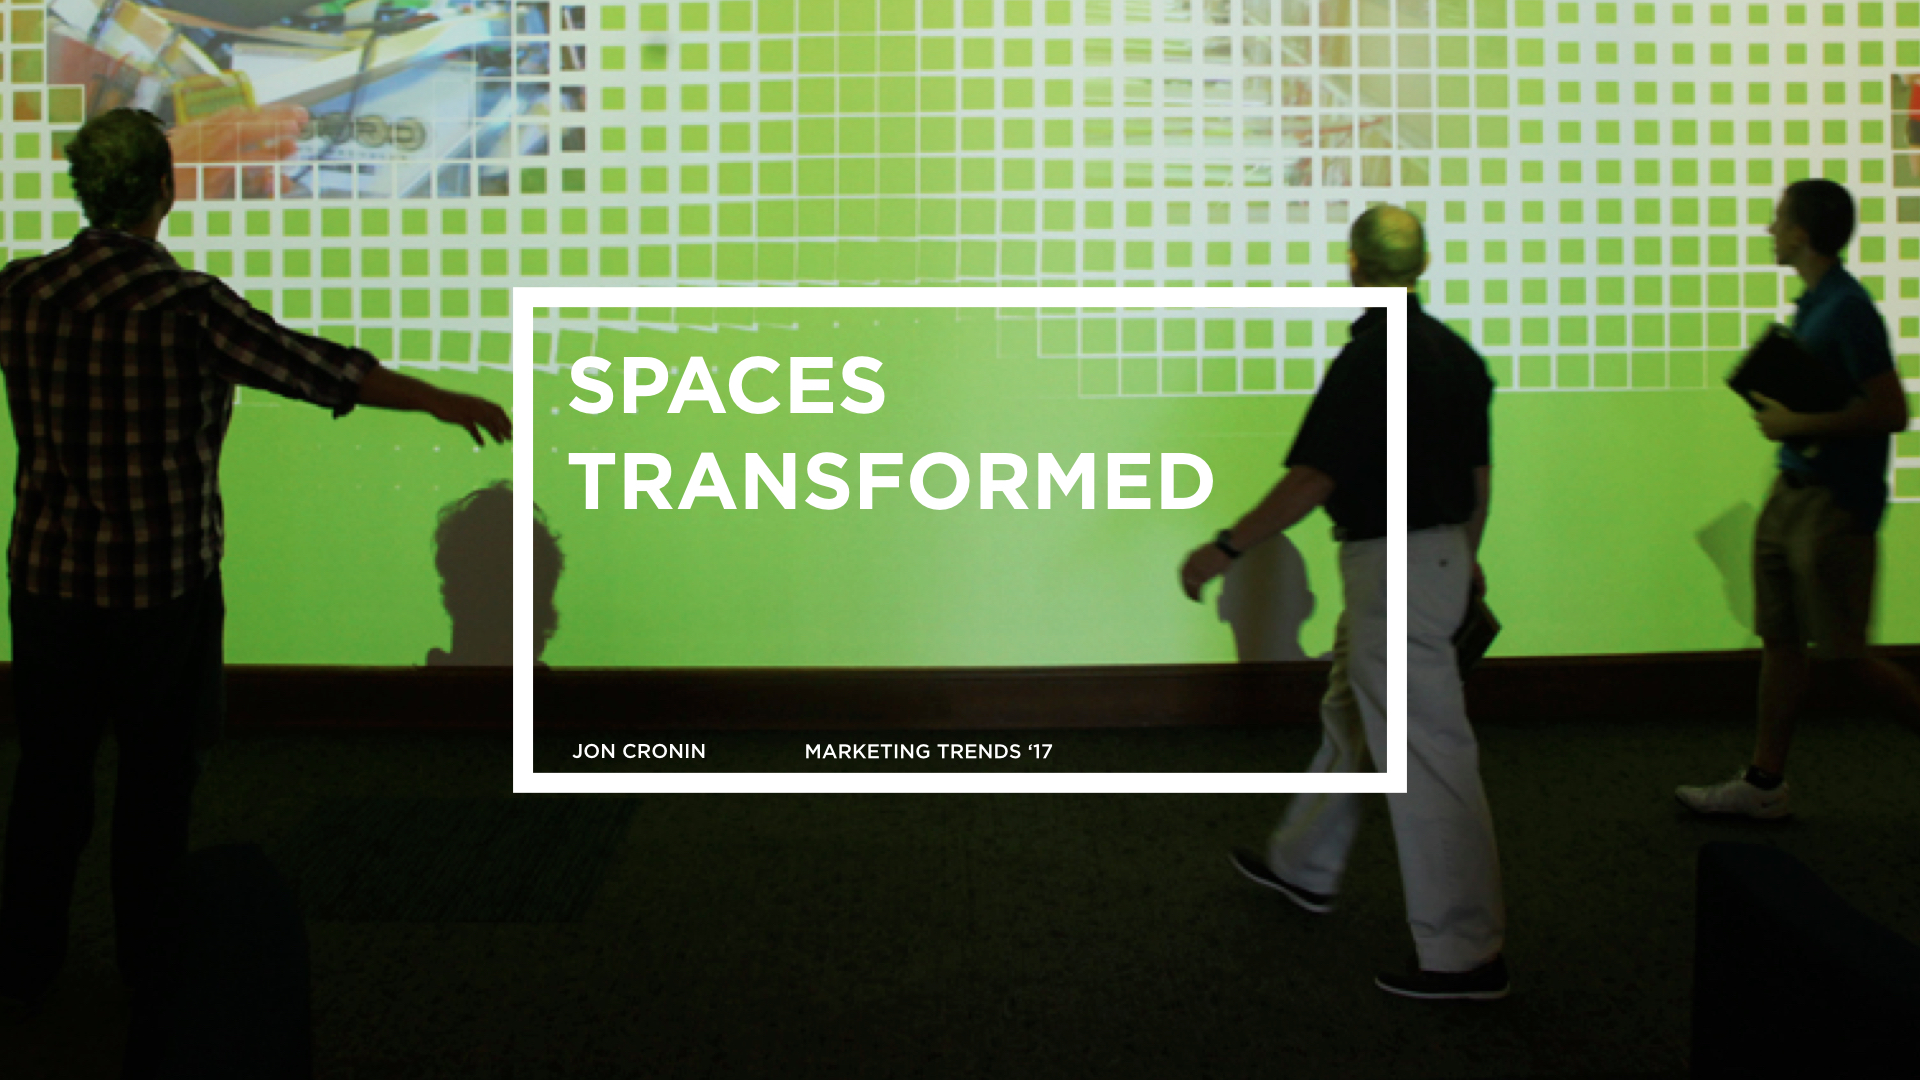 Transformative Spaces -  Interactive walls and immersive digital experiences lead by technology are becoming almost expected in the experiential world. Interactive wallpaper, 3D art wall paintings that move, 3D retail touchscreen walls, touch screen kitchens, talking walls, musical walls, sports walls - It's all about transforming spaces with technology and interactivity baby.  http://www.trendhunter.com/slideshow/interactive-walls